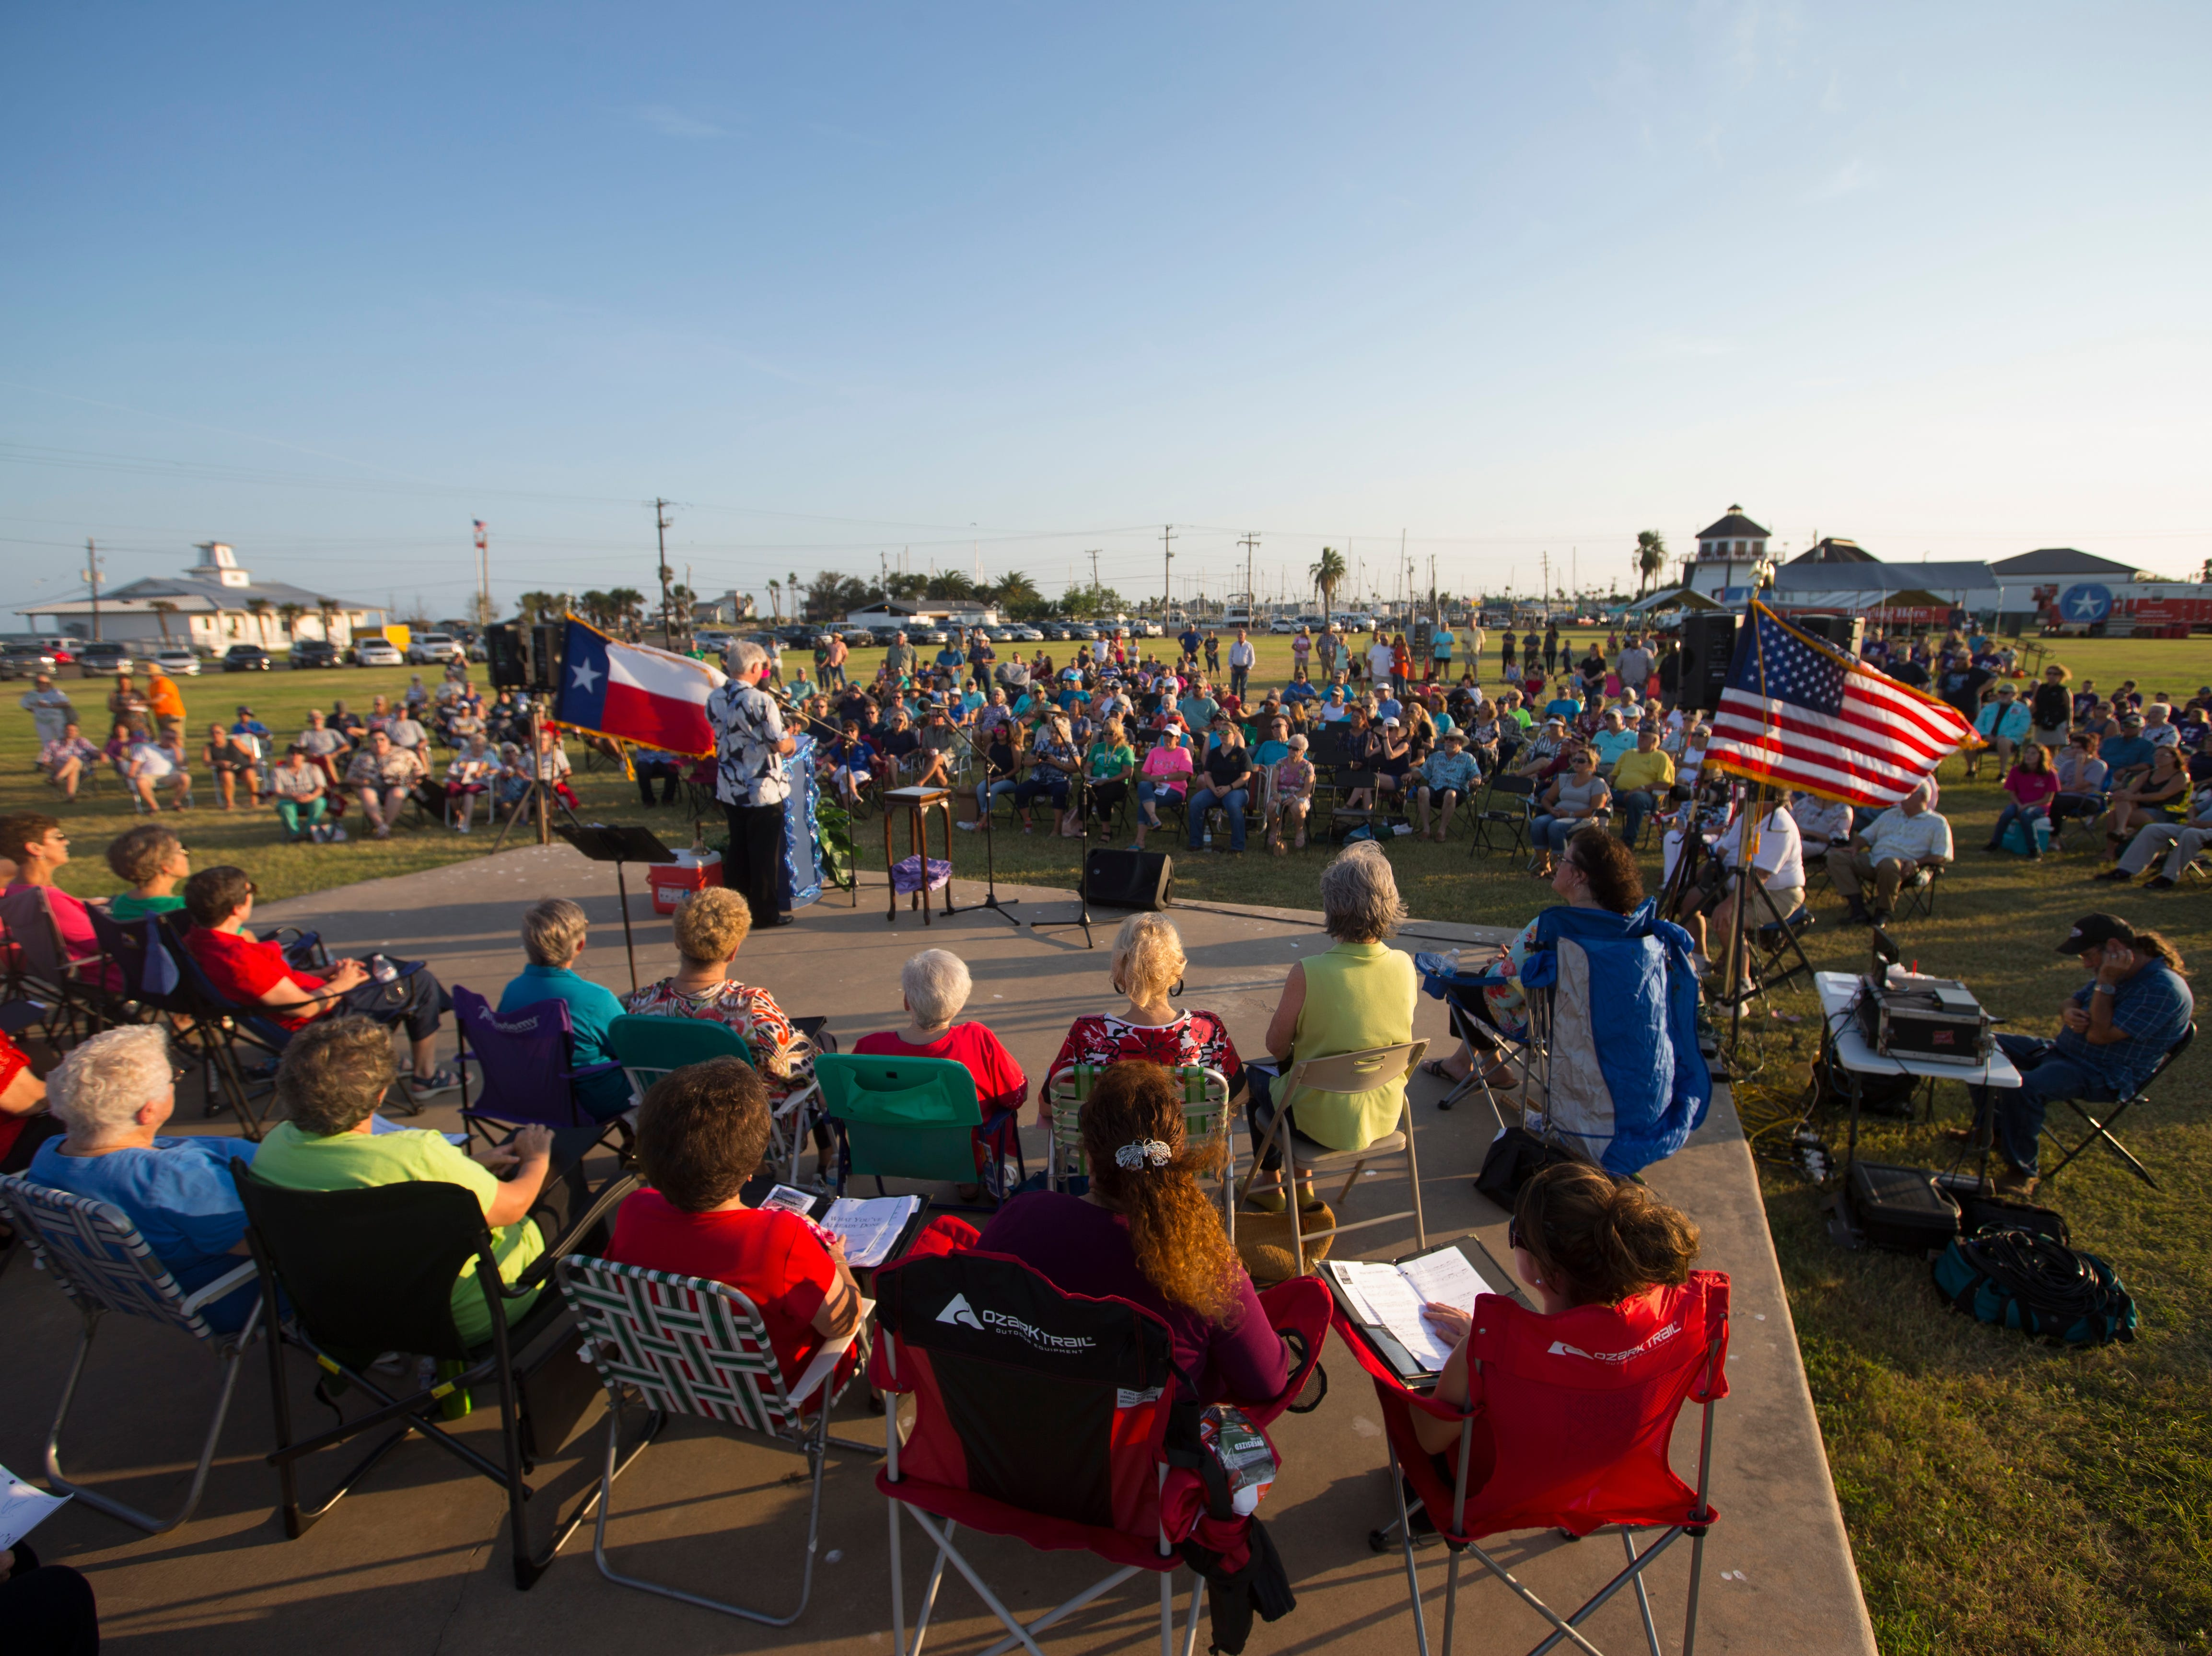 Members of the Rockport community gather for a remembrance ceremony for the anniversary of Hurricane Harvey on Friday, Aug. 24, 2018 in Rockport.